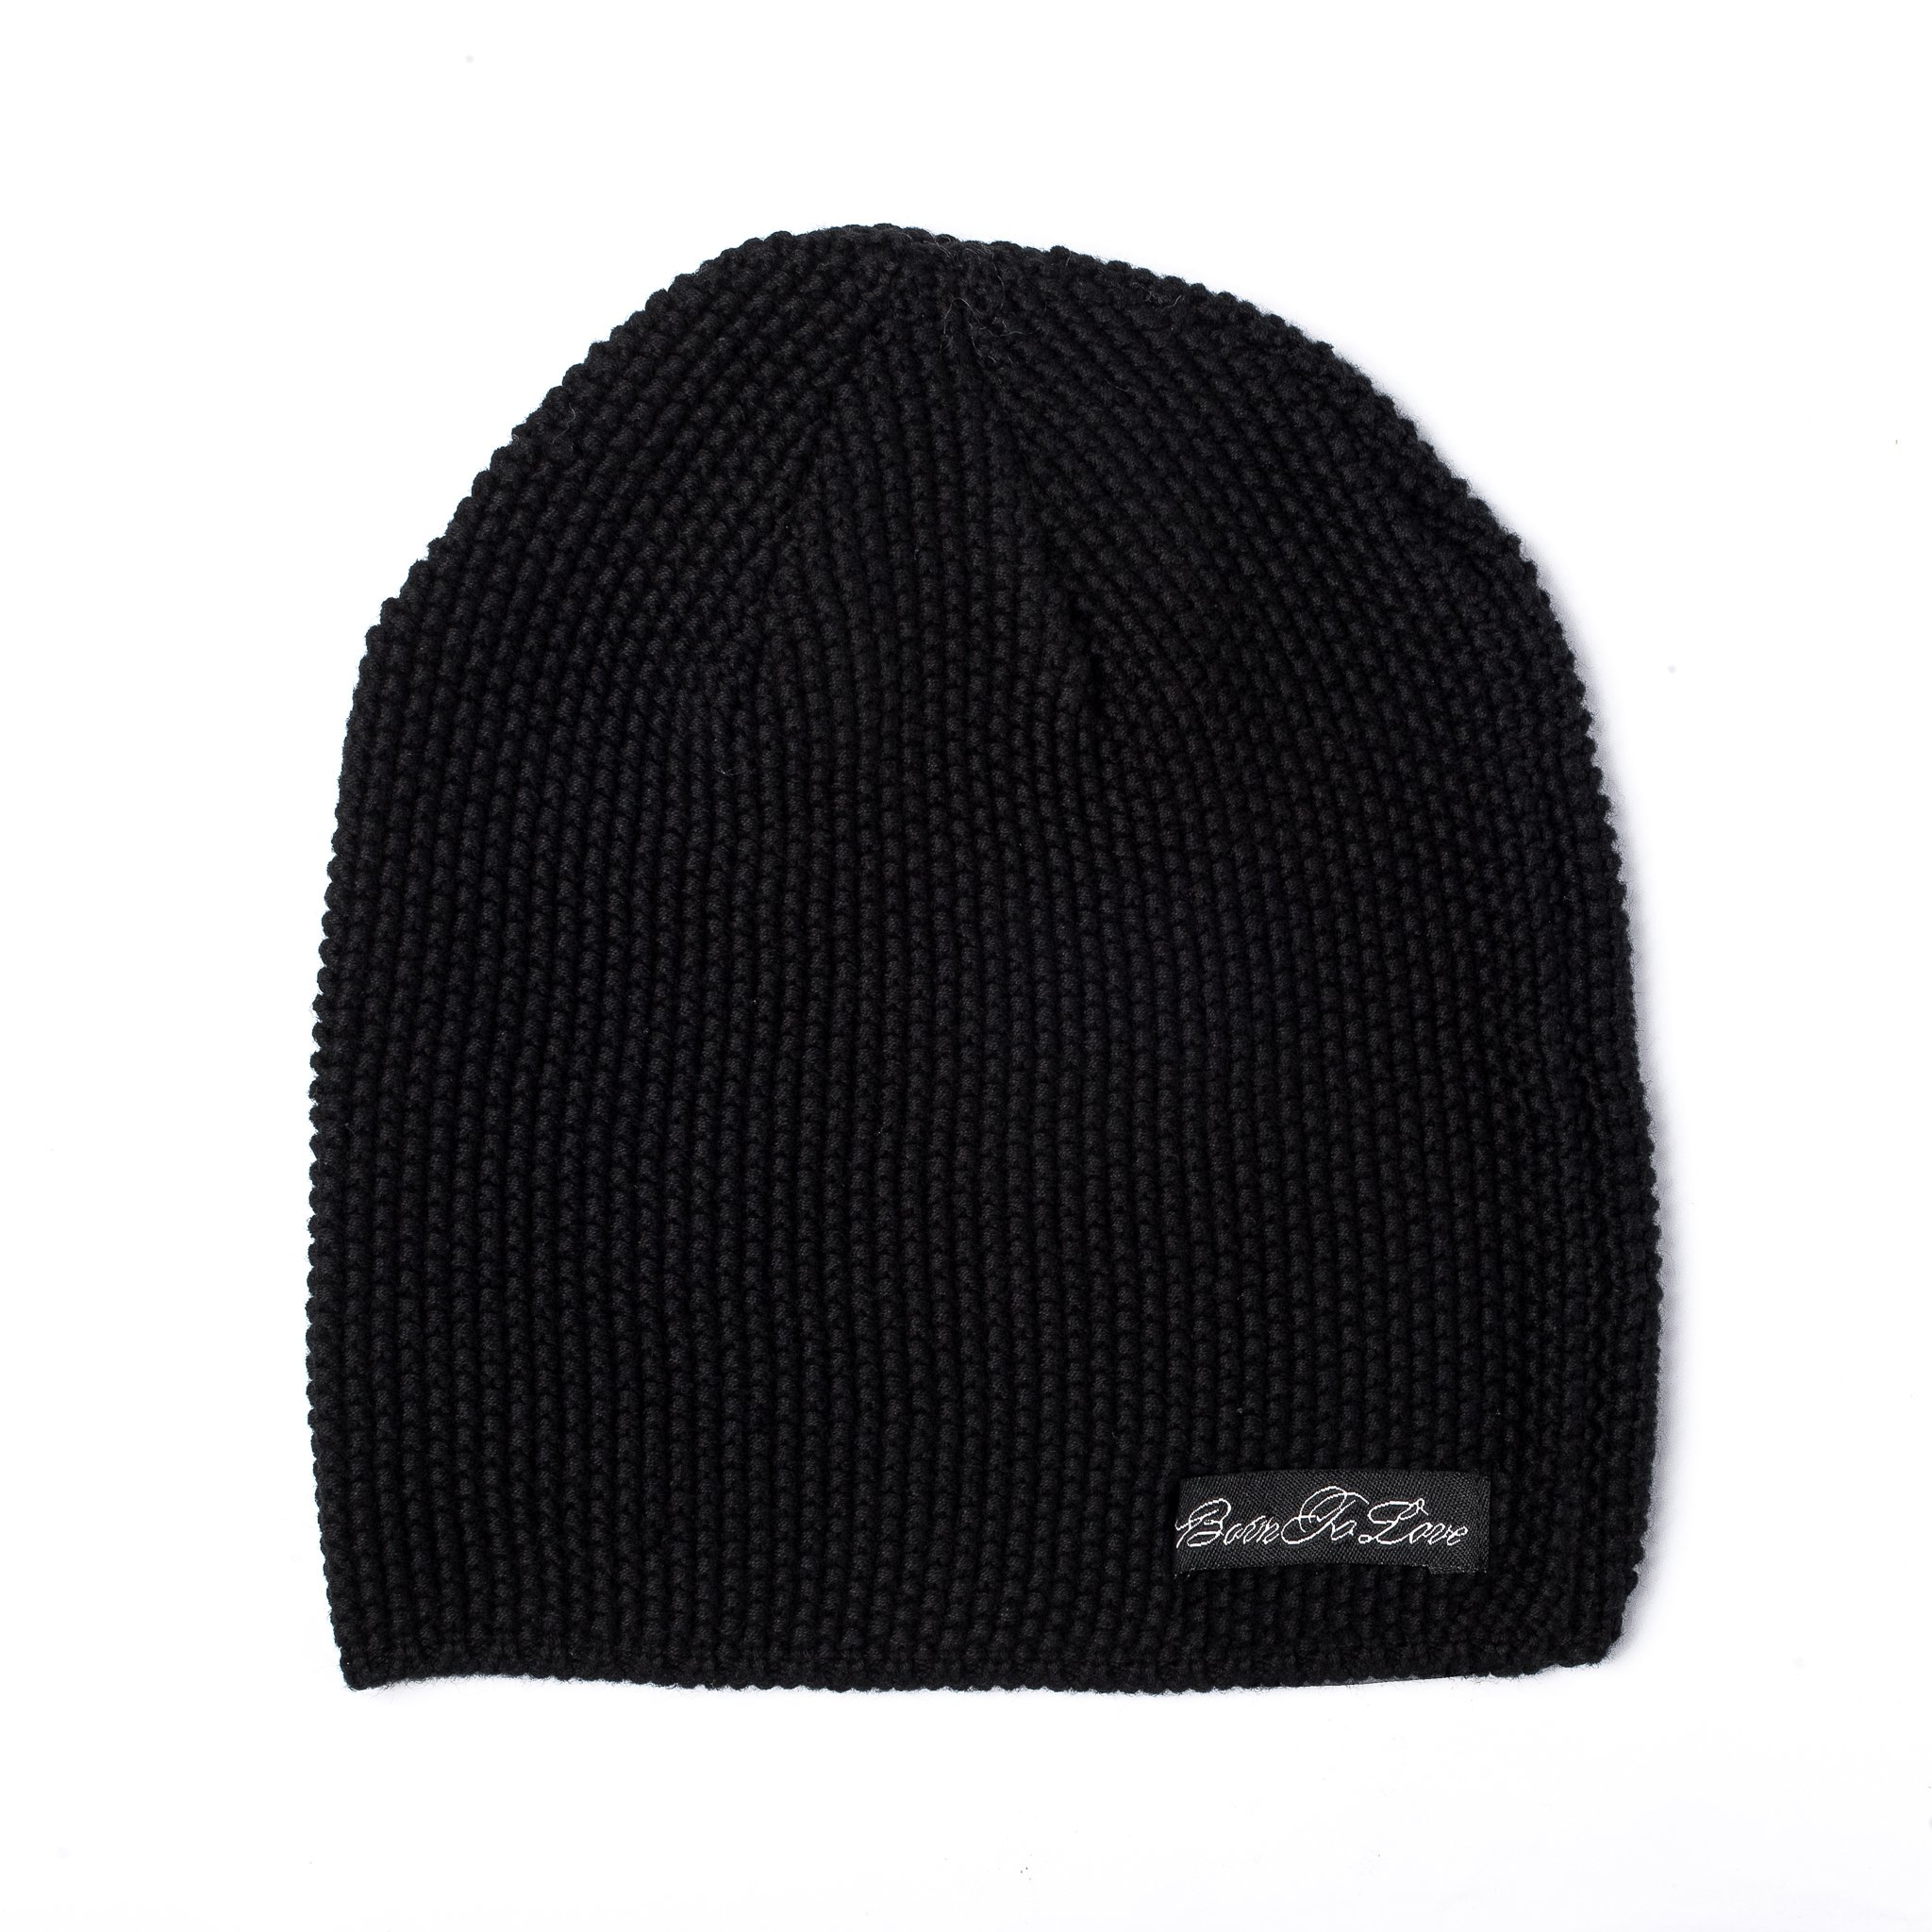 6fe4d920680 Best Rated in Boys  Cold Weather Hats   Caps   Helpful Customer ...